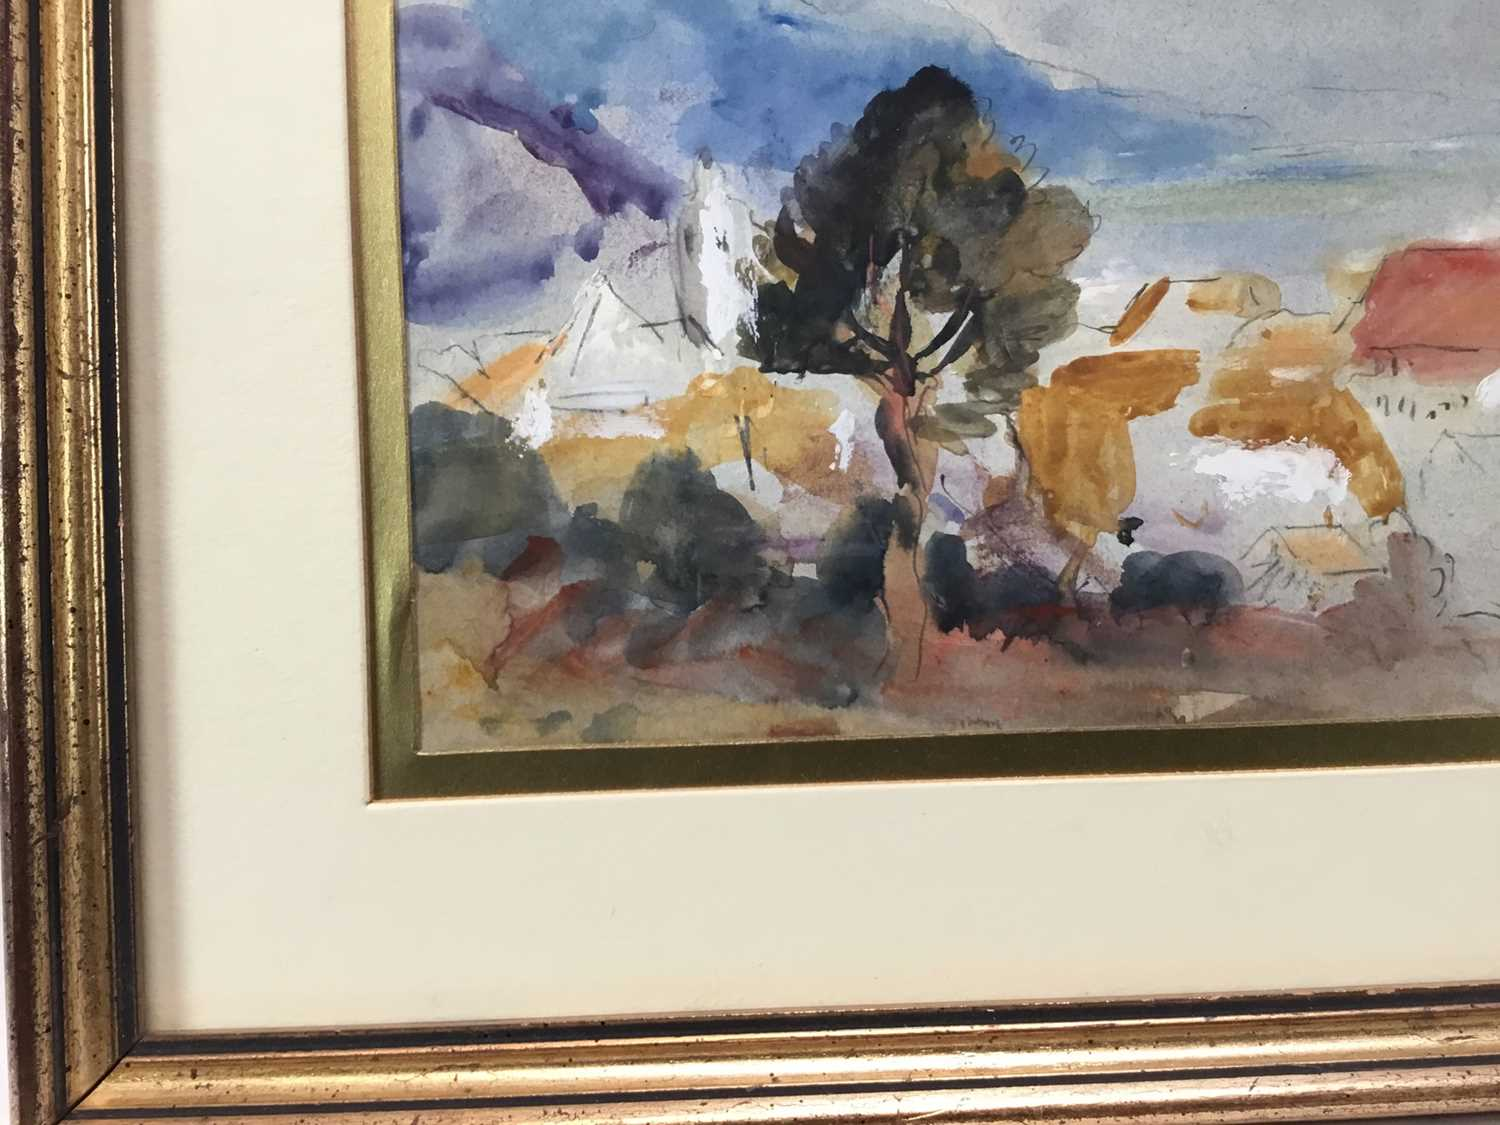 Robert G. D. Alexander (1875-1945) pencil and watercolour - view of Laigueglia, 14cm x 18.5cm, in gl - Image 3 of 8